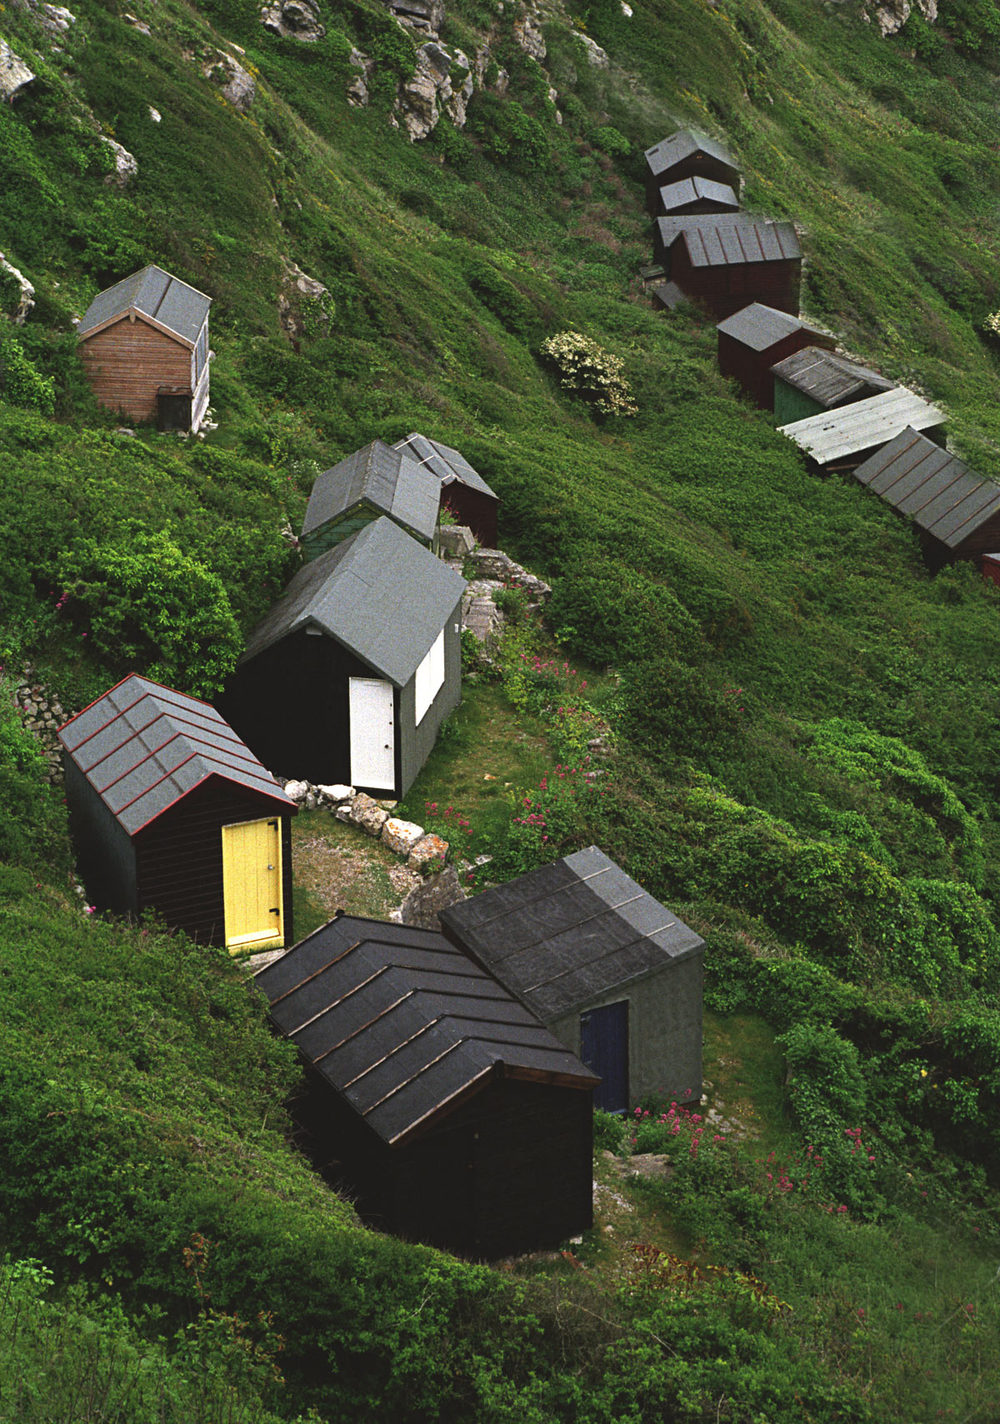 England_UK_Beach_Shacks.jpg